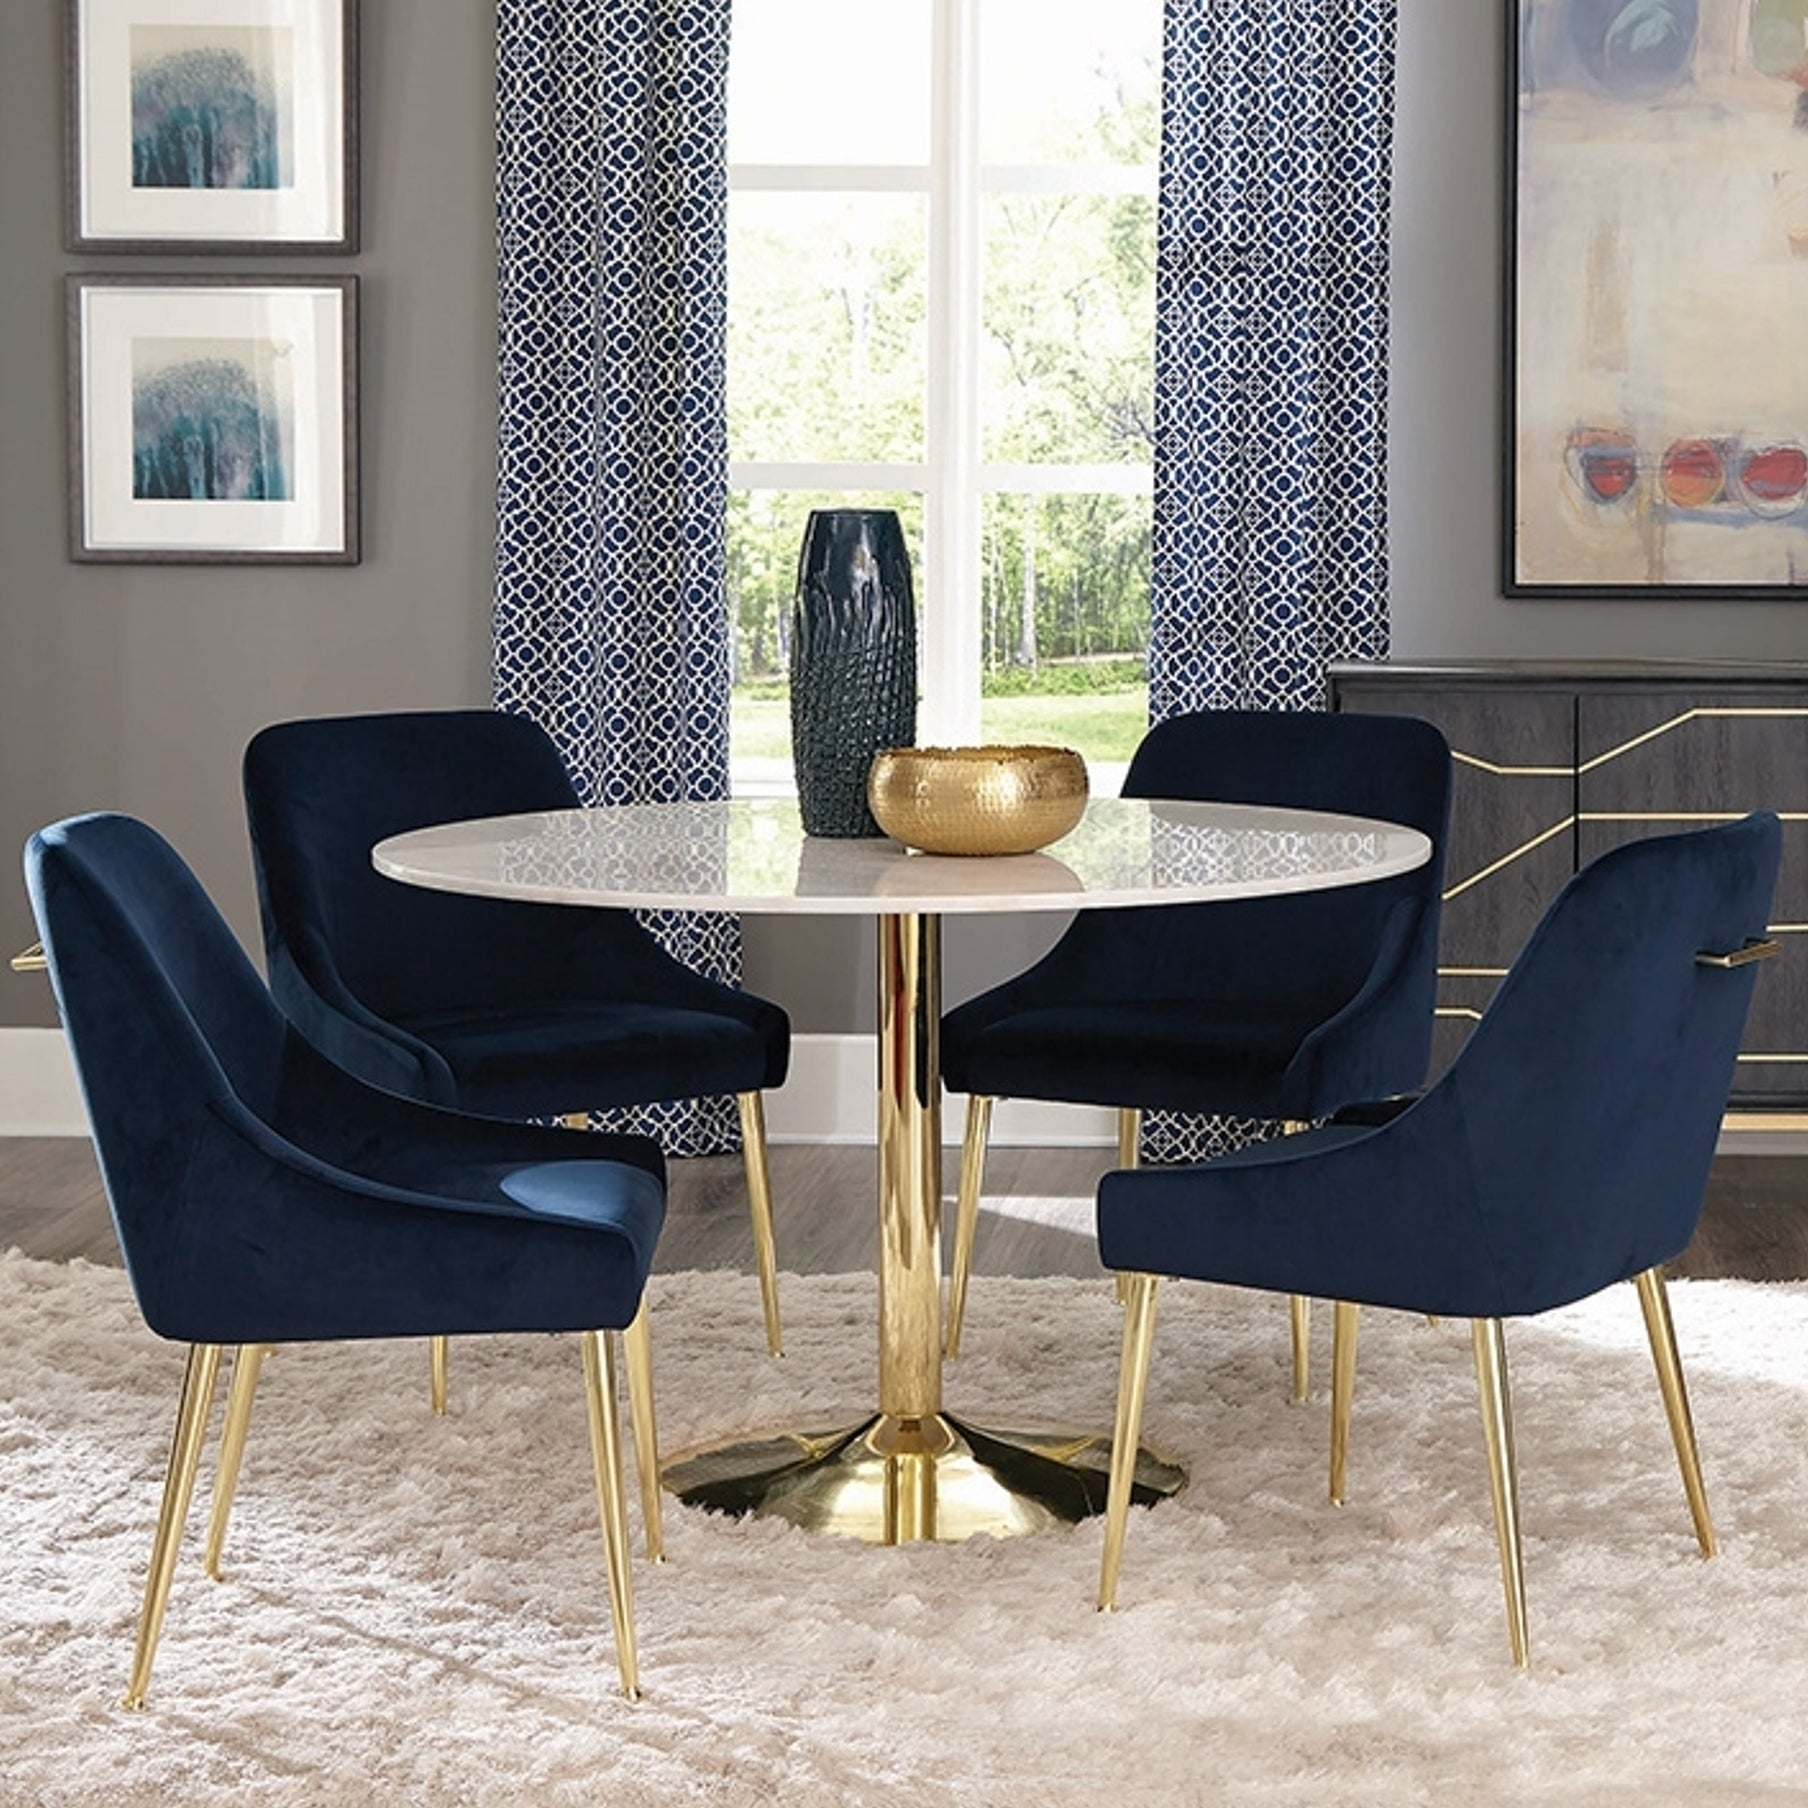 Marble And Brass 5 Piece Round Dining Set With Blue Velvet Chairs On Sale Overstock 24105914